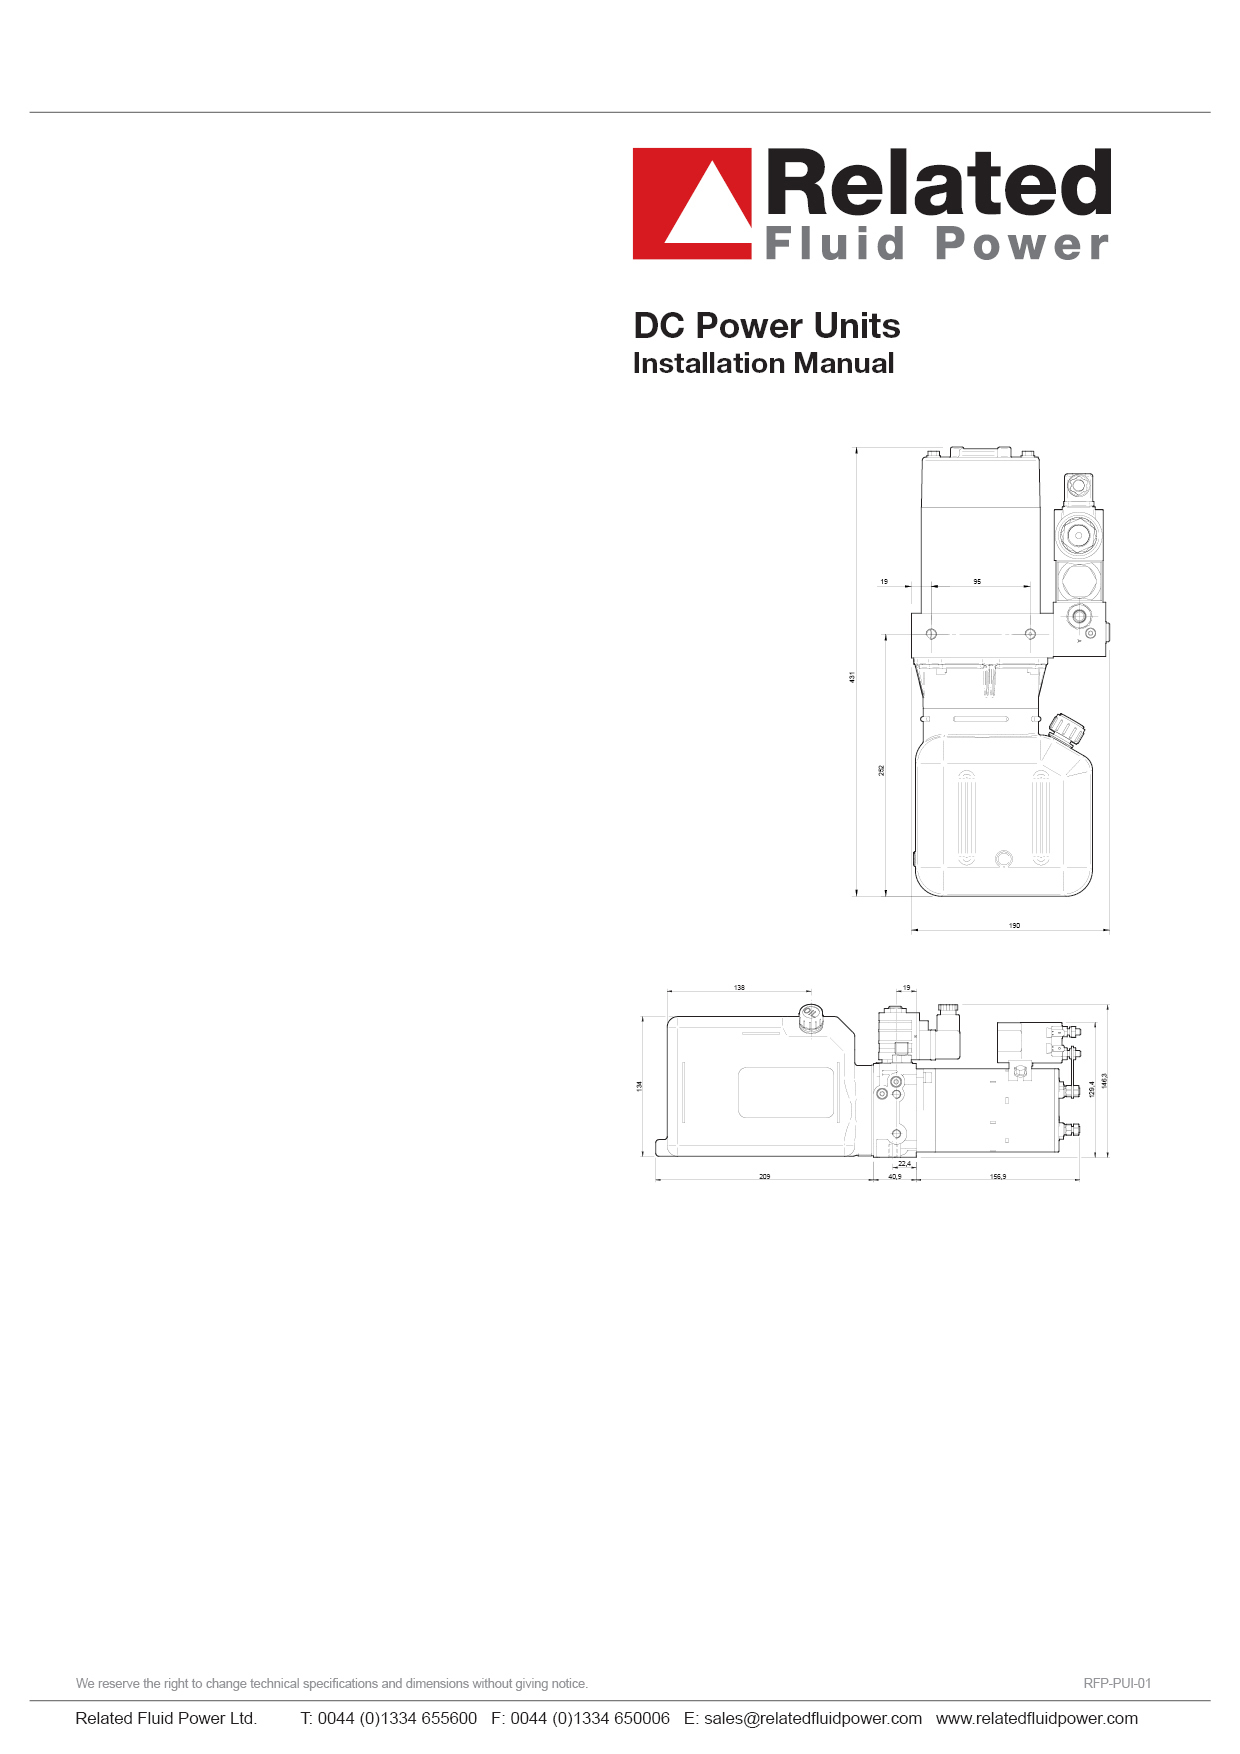 DC Hydraulic Power Units Installation & Maintenance Manual